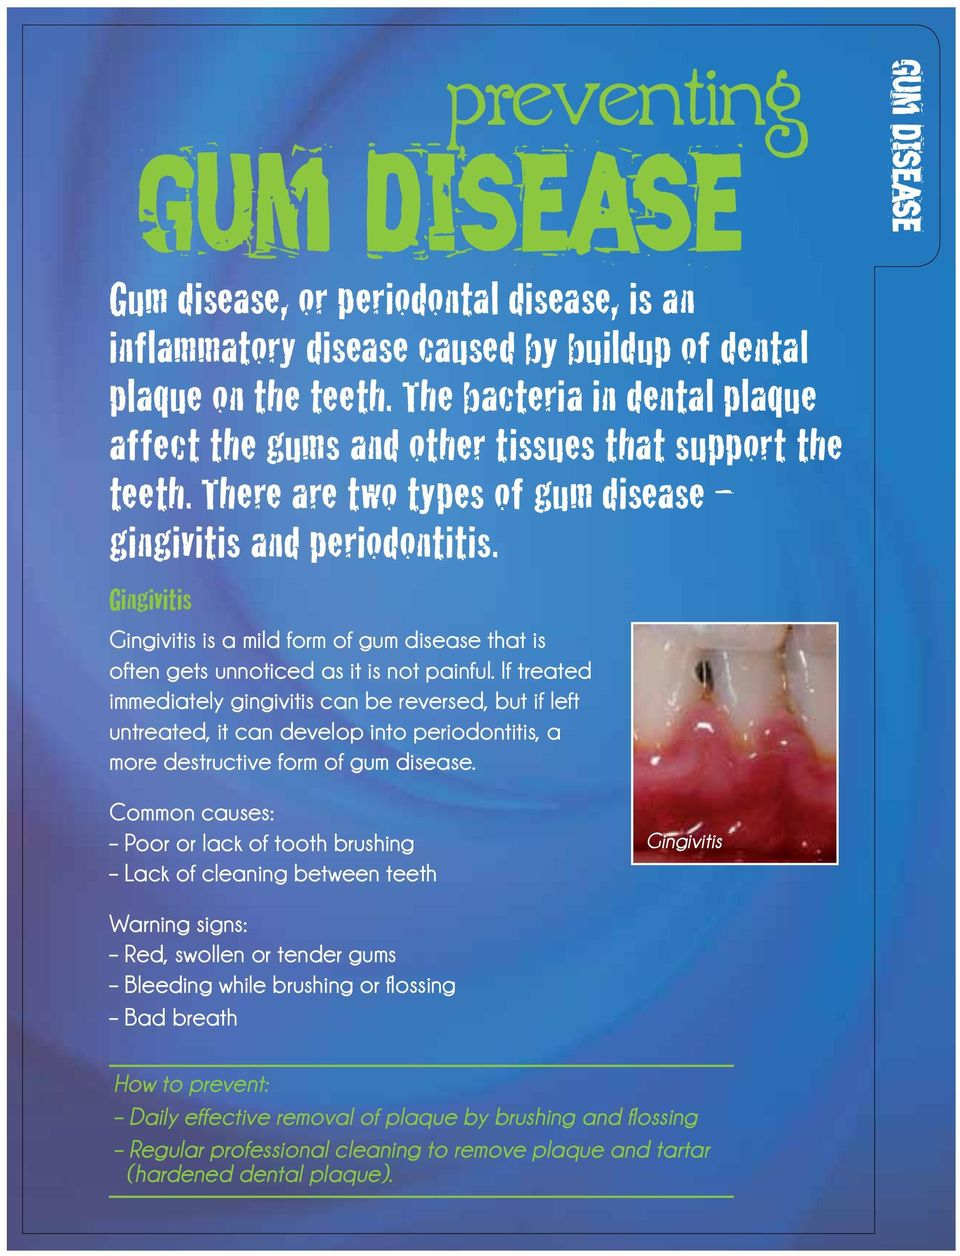 Gingivitis Gingivitis is a mild form of gum disease that is often gets unnoticed as it is not painful.